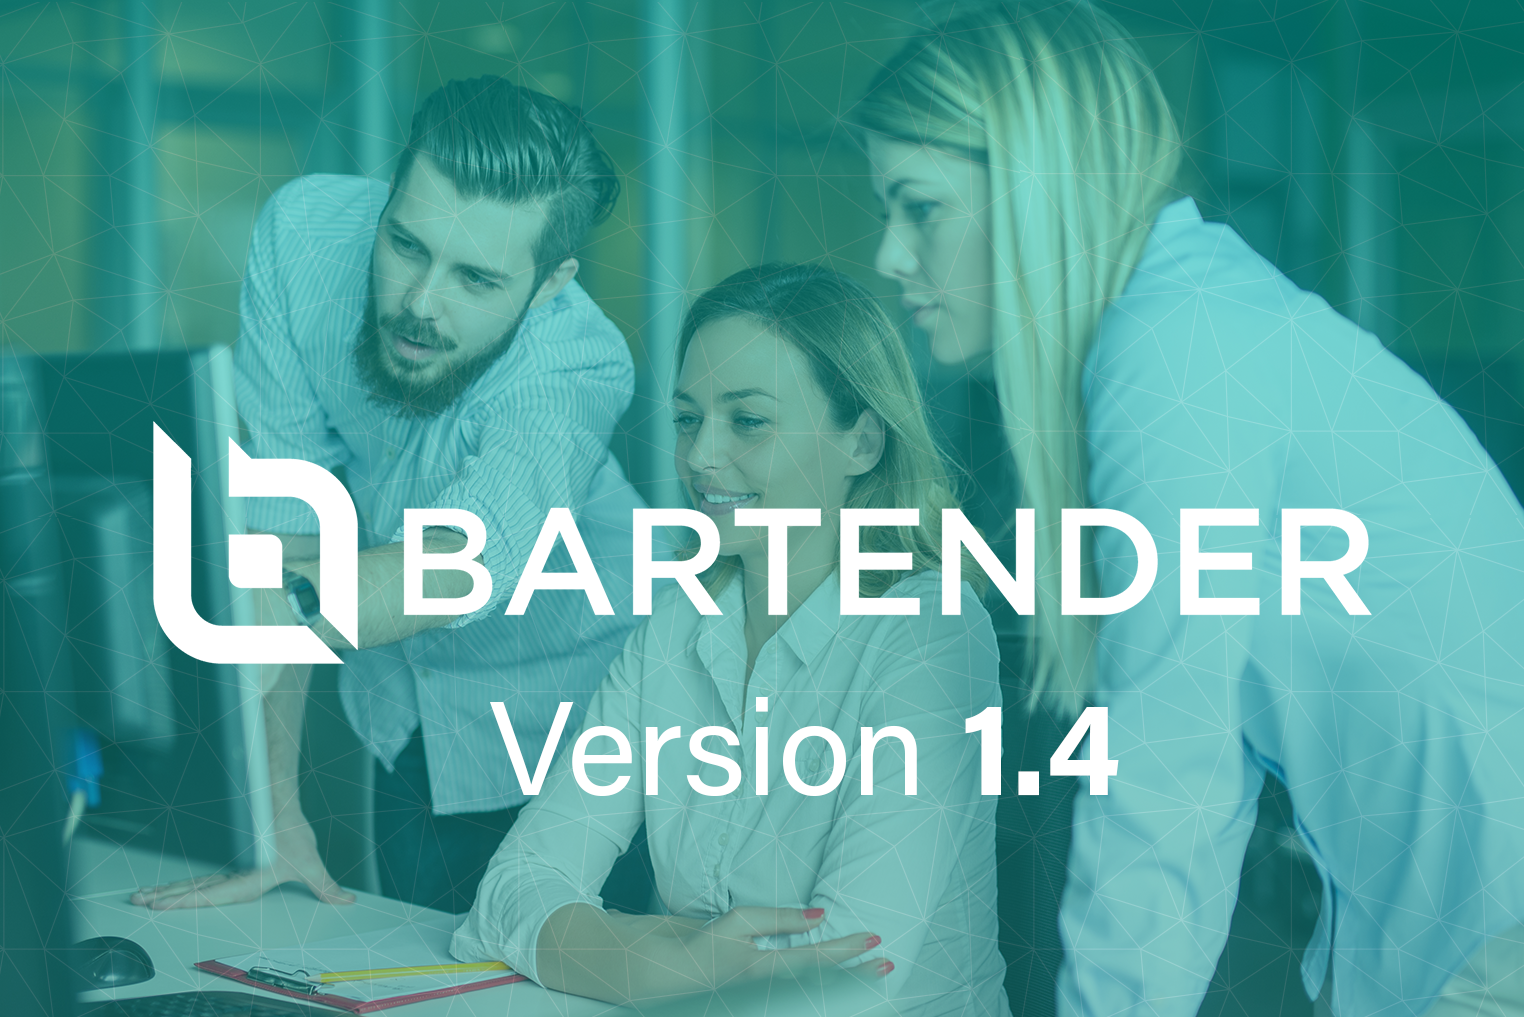 Blog Featured Image Template - Bartender - 1.4